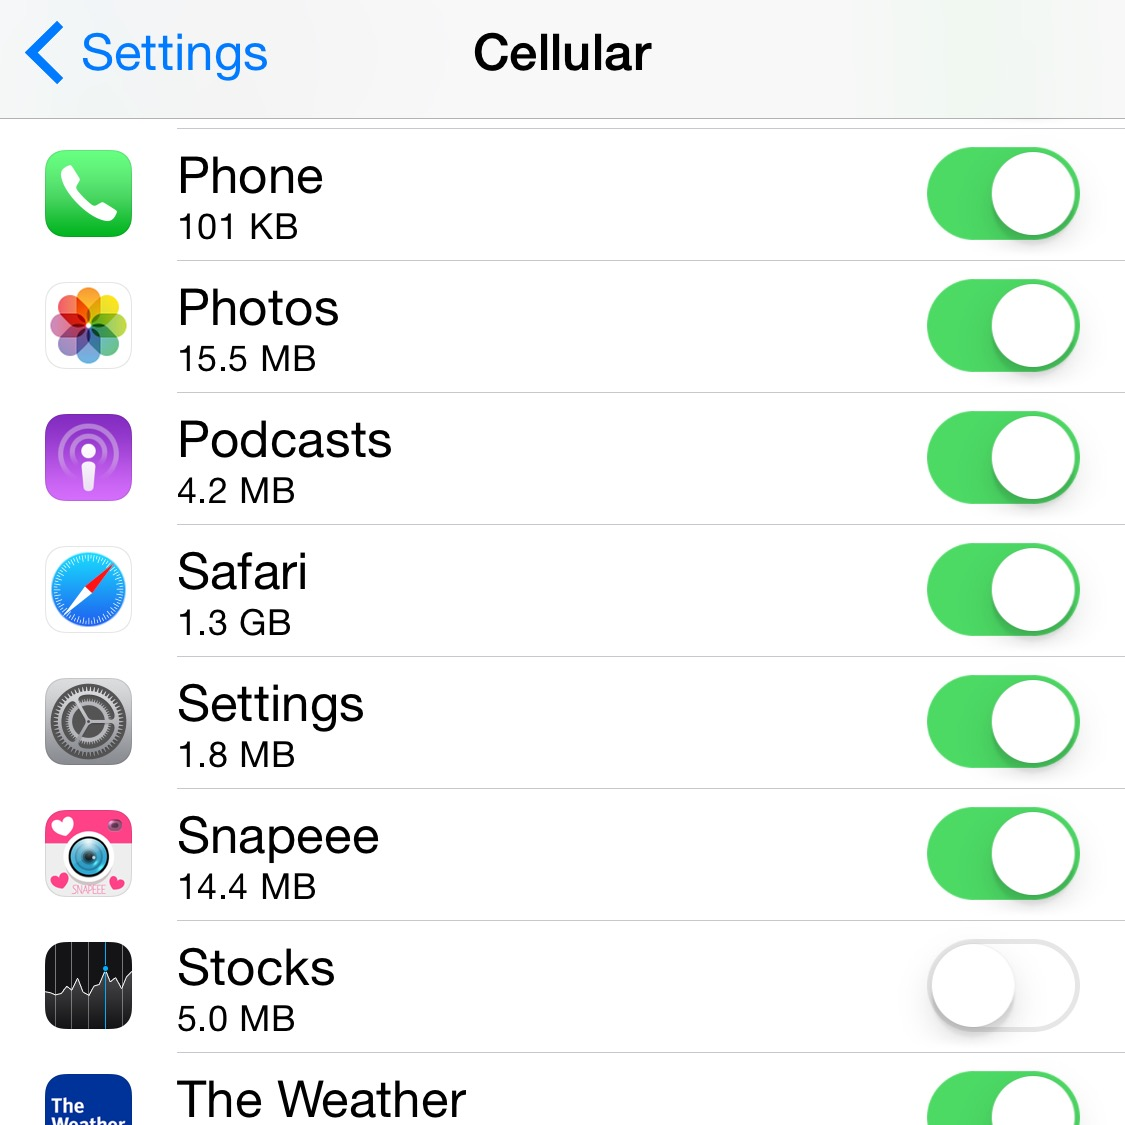 Safari must be turned on in the Cellular options.